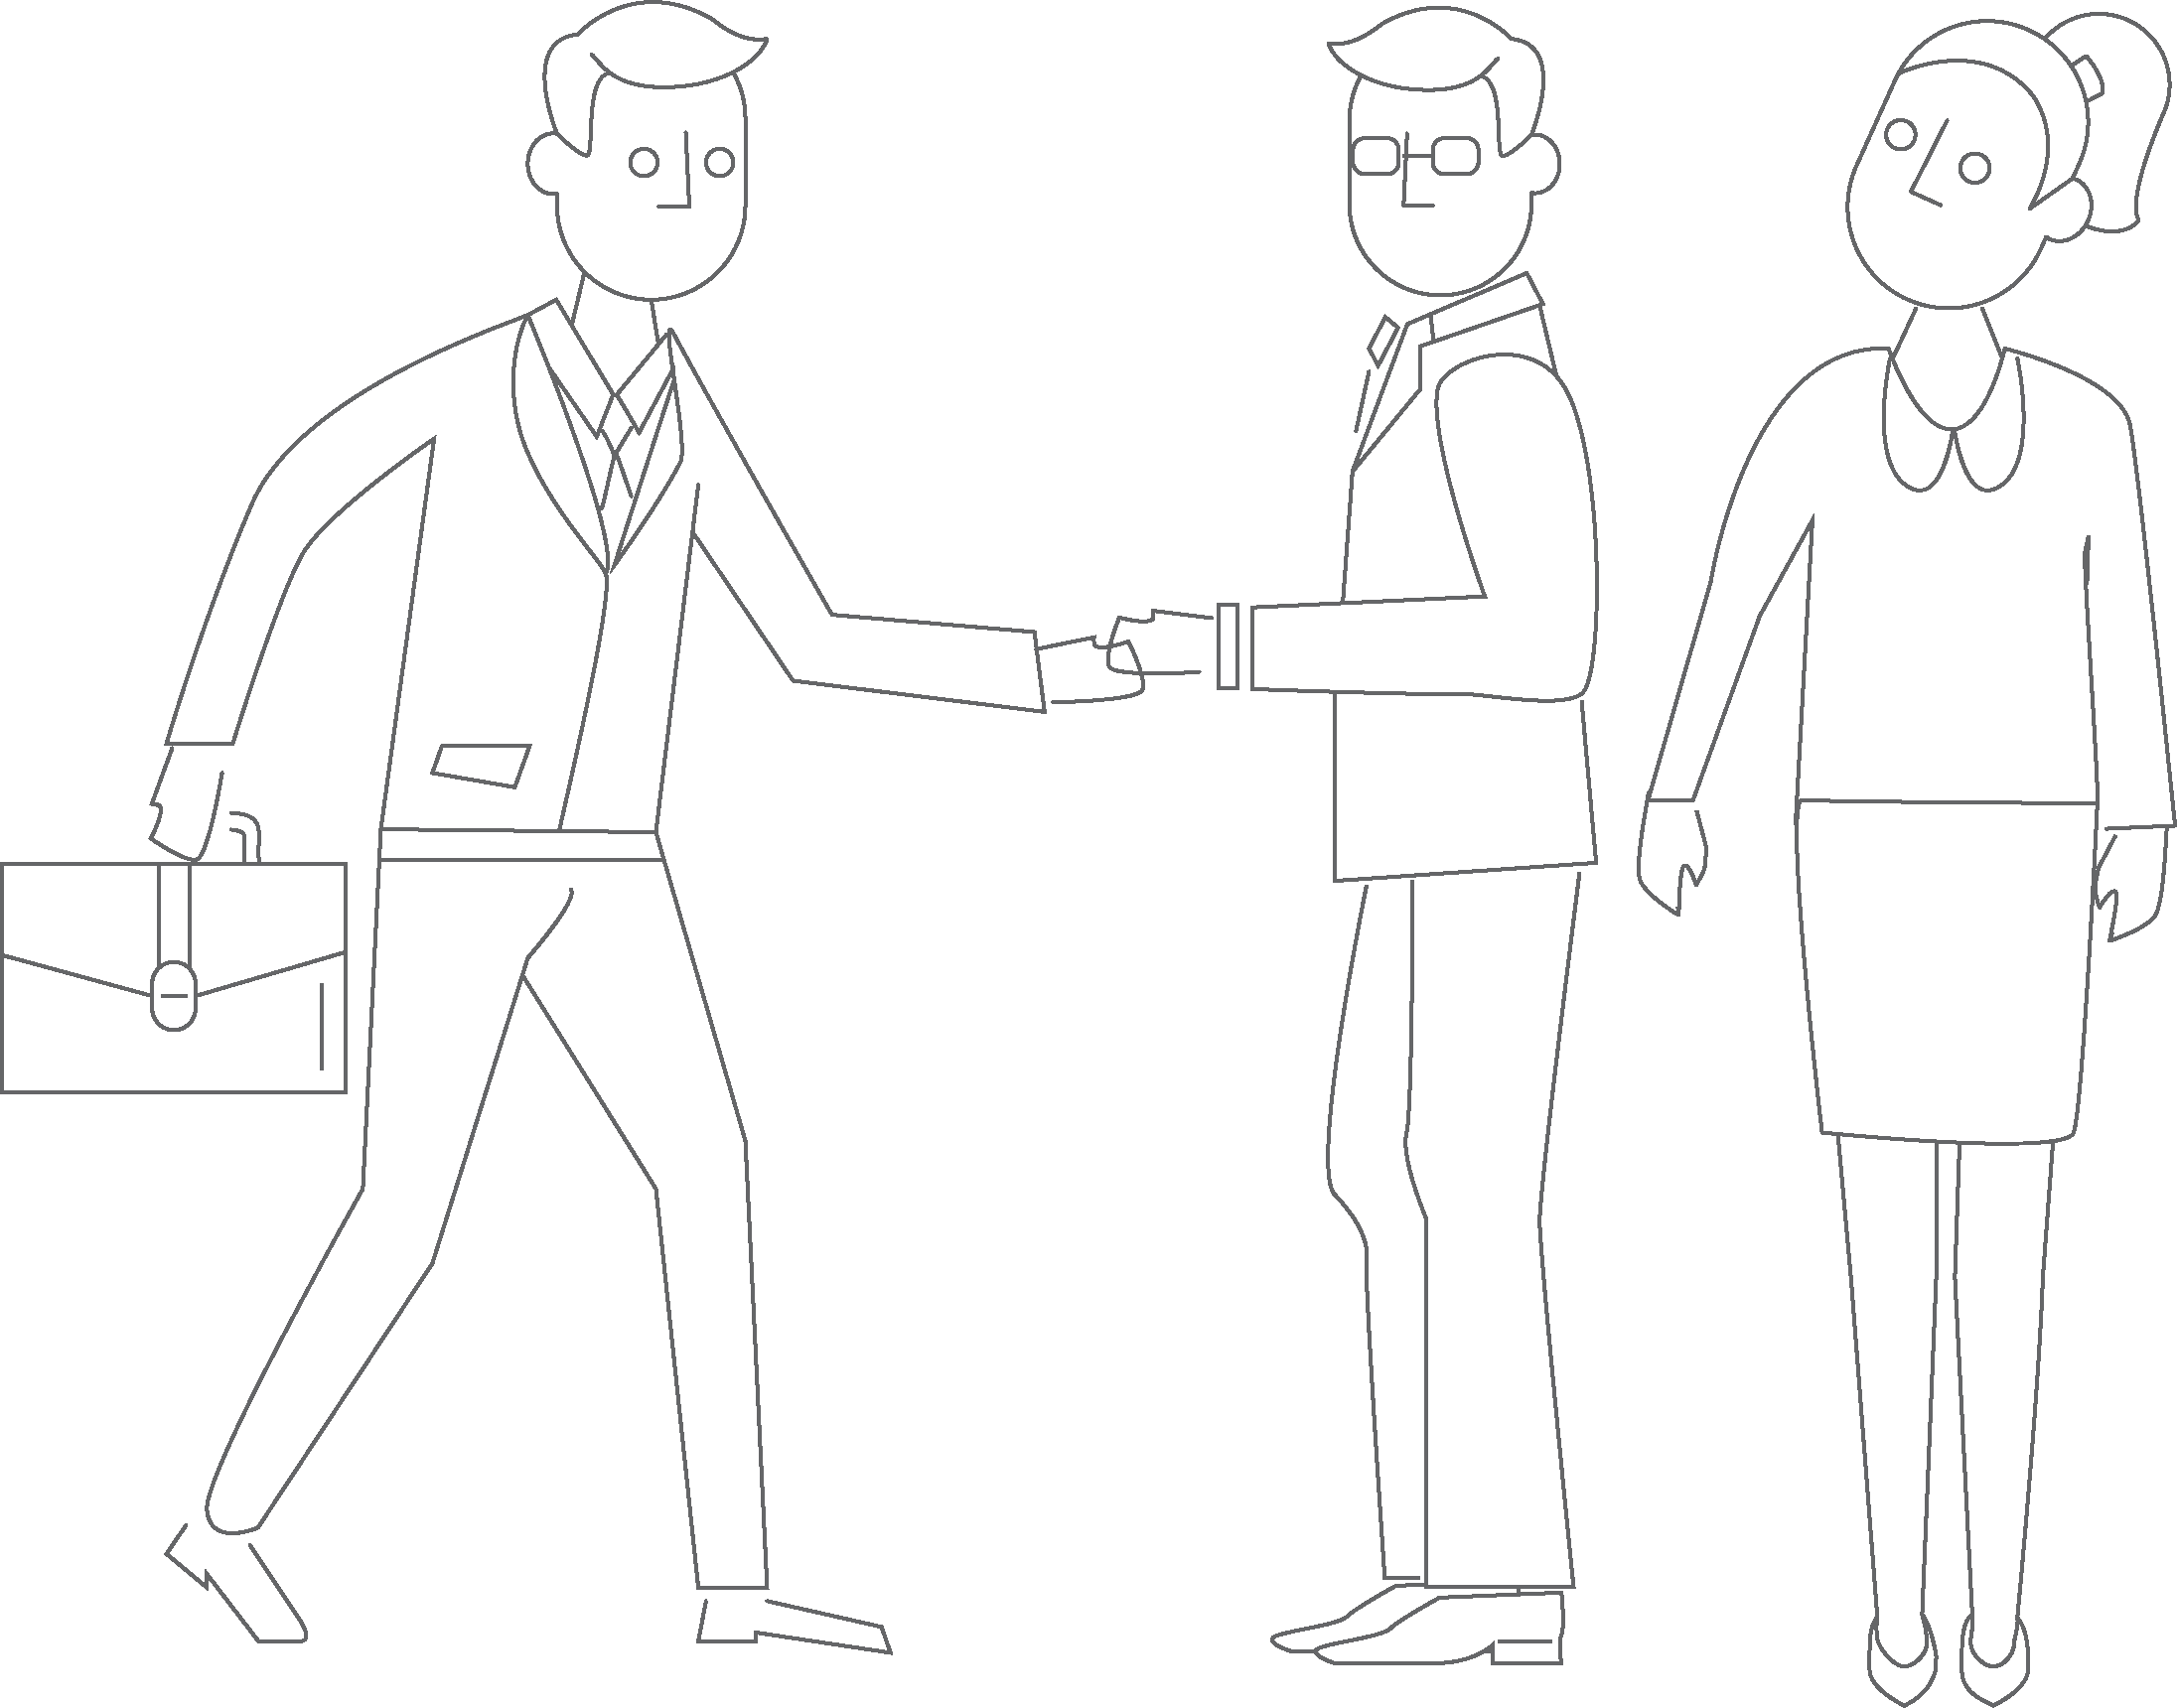 people_agreement_collaboration_work_grey.png